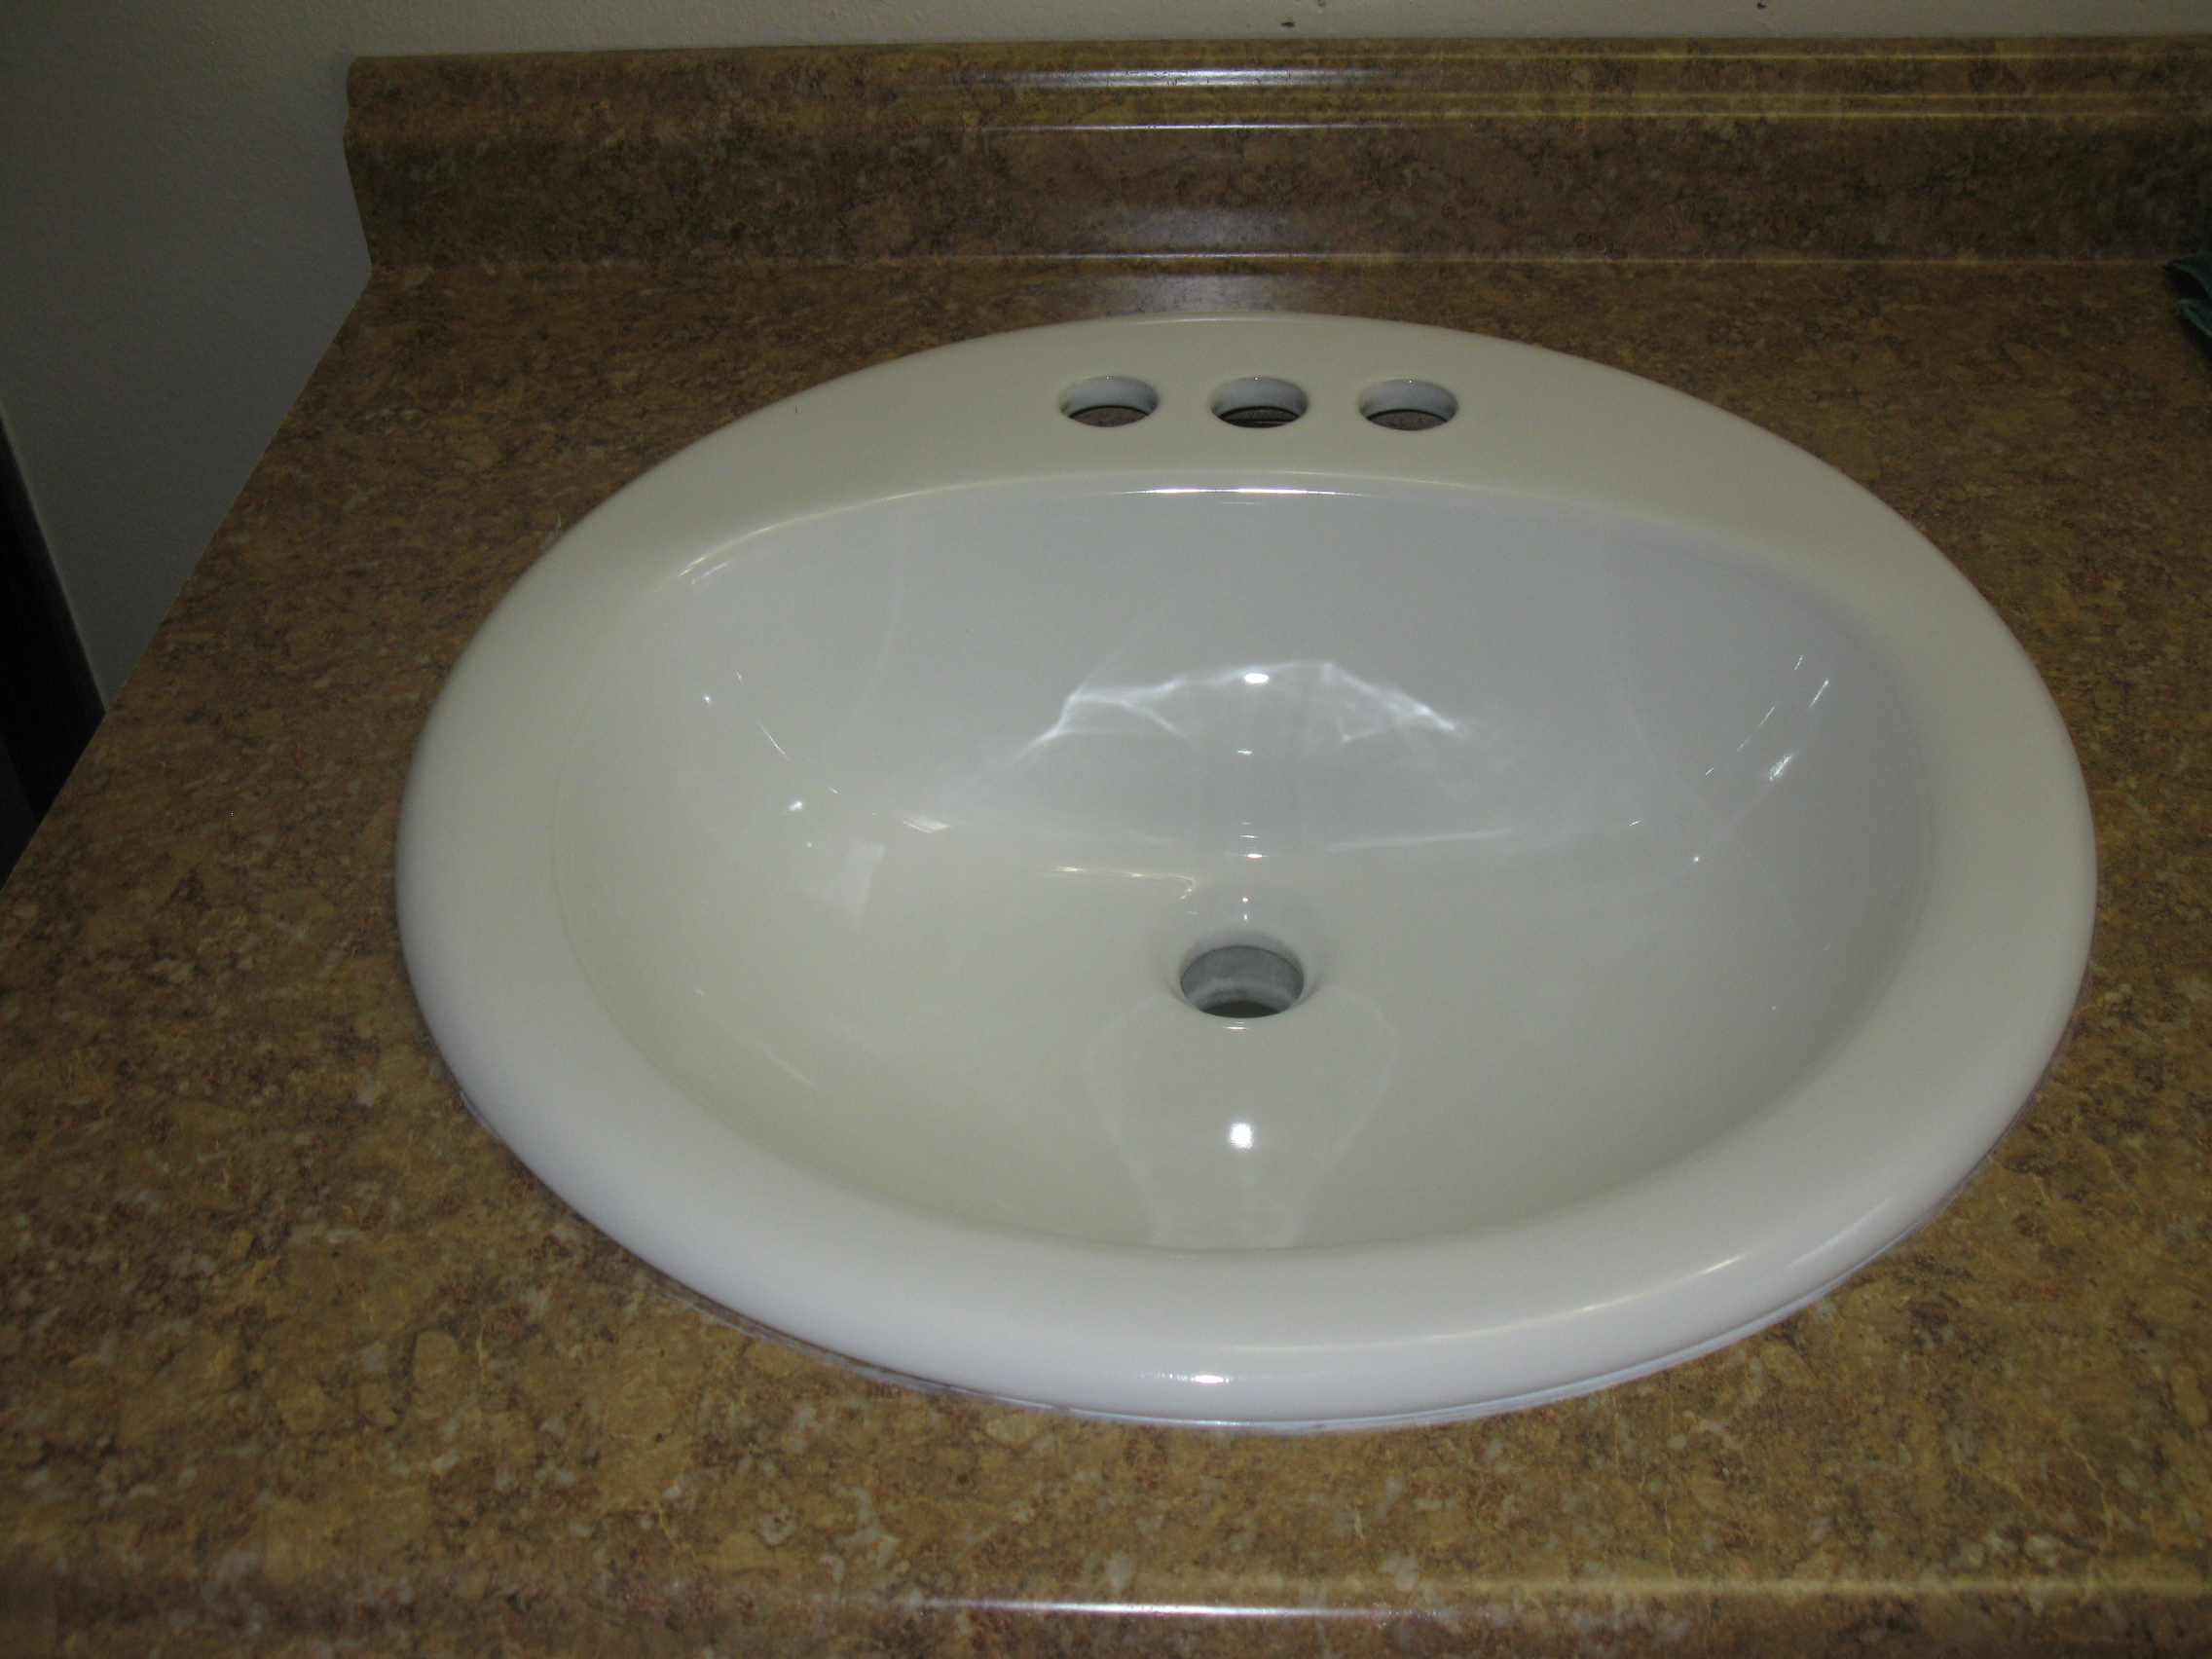 ... Faucet And Caulk Around Circle Base. Bathroom Remodel Sink And Cabinet  My Handy Family